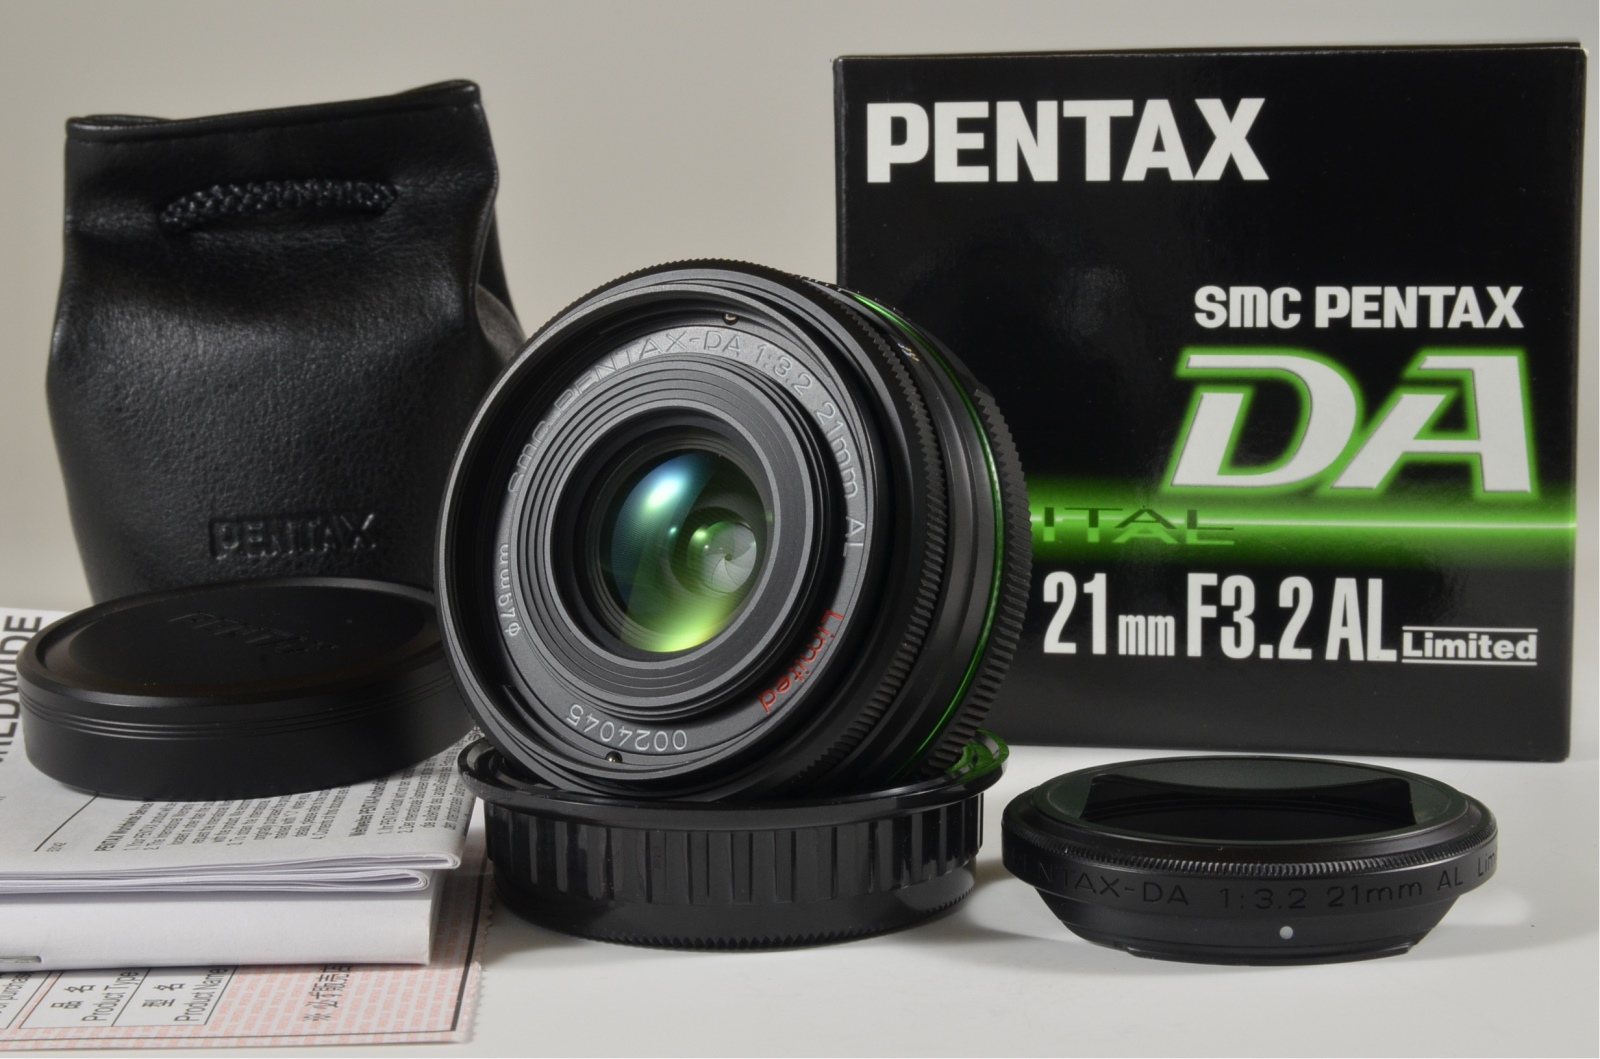 pentax smc da 21mm f3.2 al limited